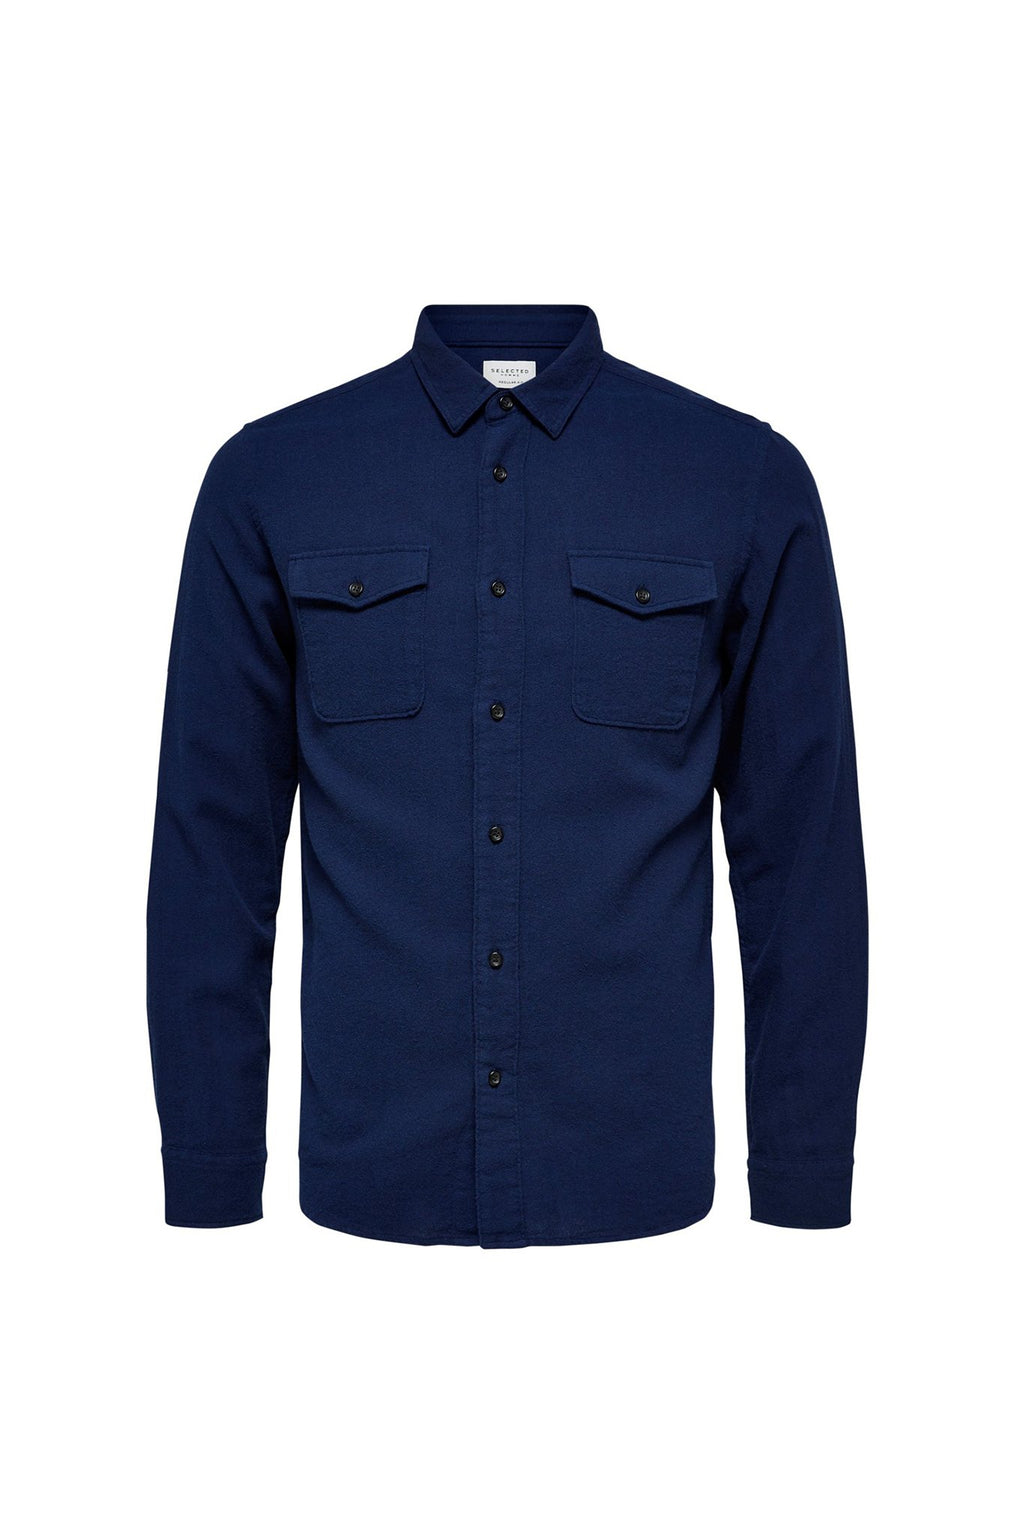 Worker Shirt - Night Sky Blue